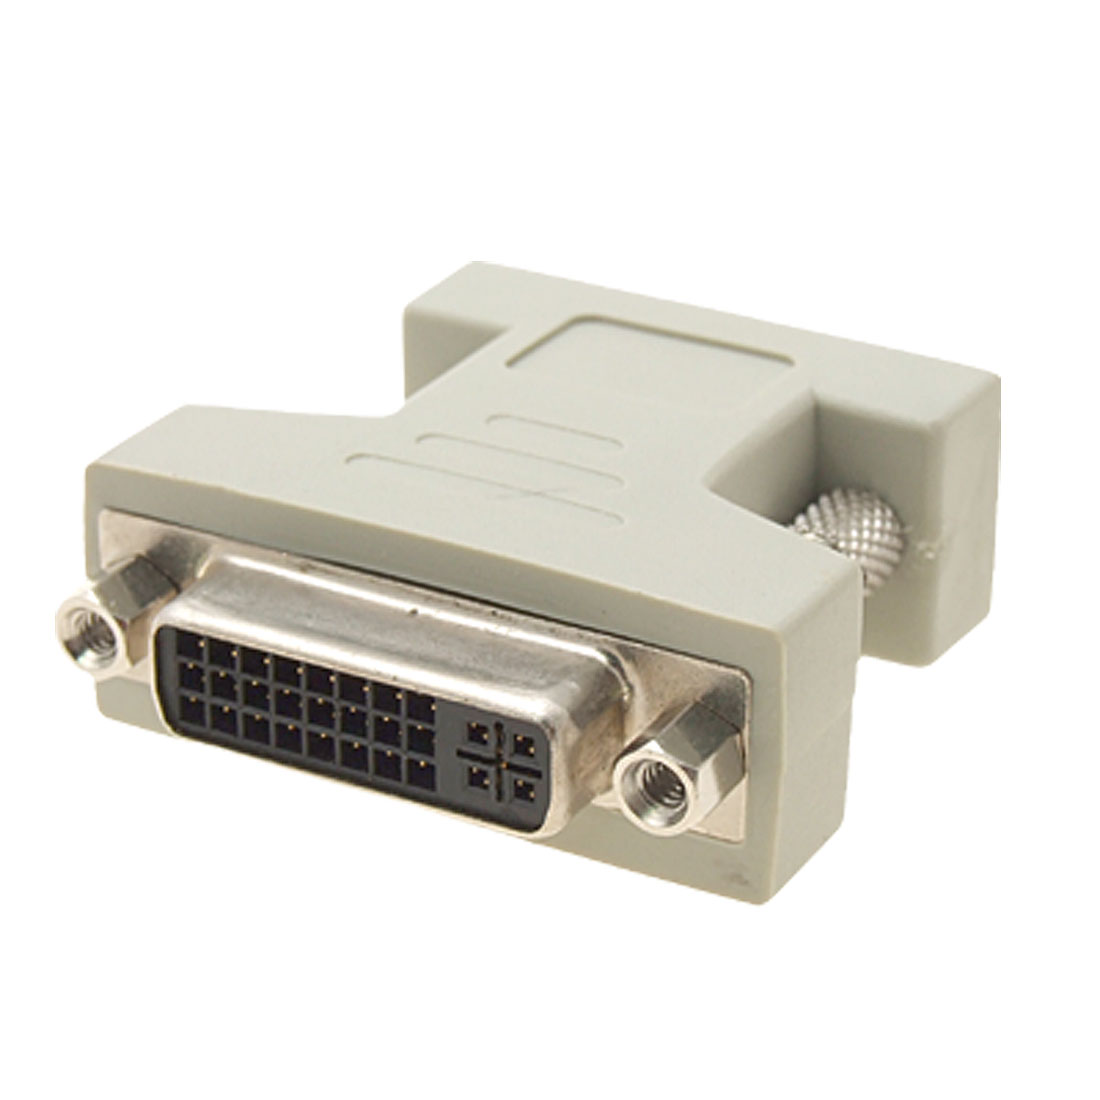 VGA Male to DVI-I Dual Link Female Converter Adapter